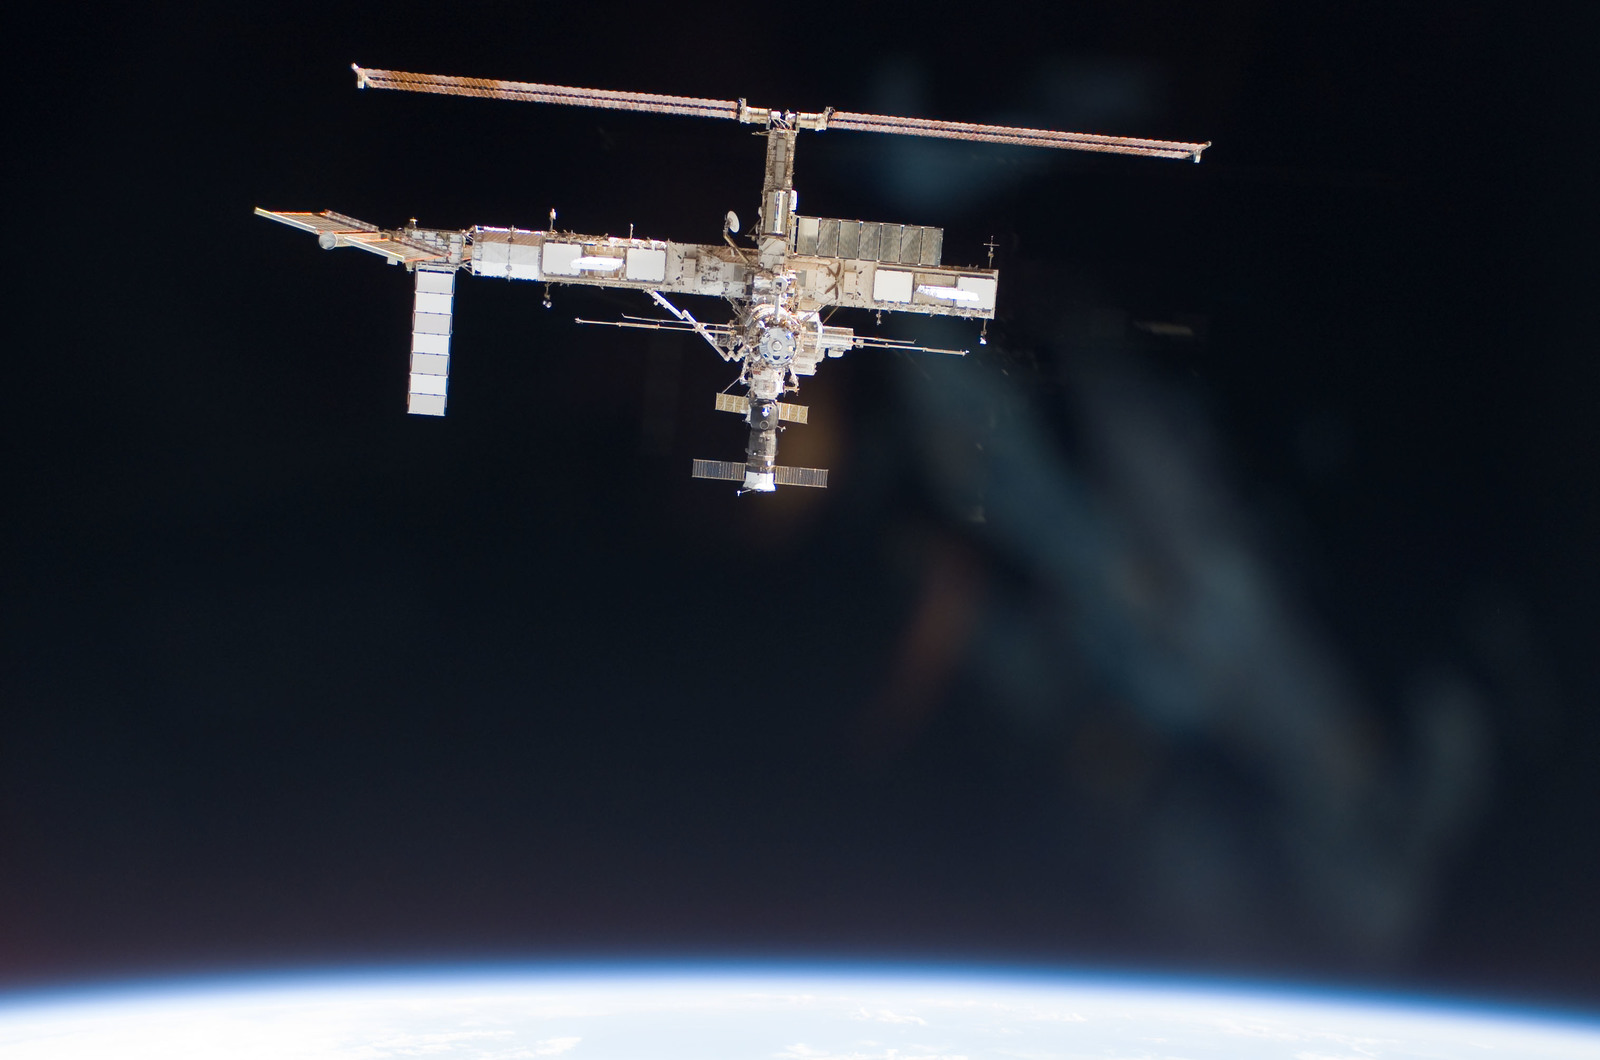 S115E06701 - STS-115 - Overall exterior view of the ISS during undocking and Flyaround Operations for STS-115 Space Shuttle Atlantis